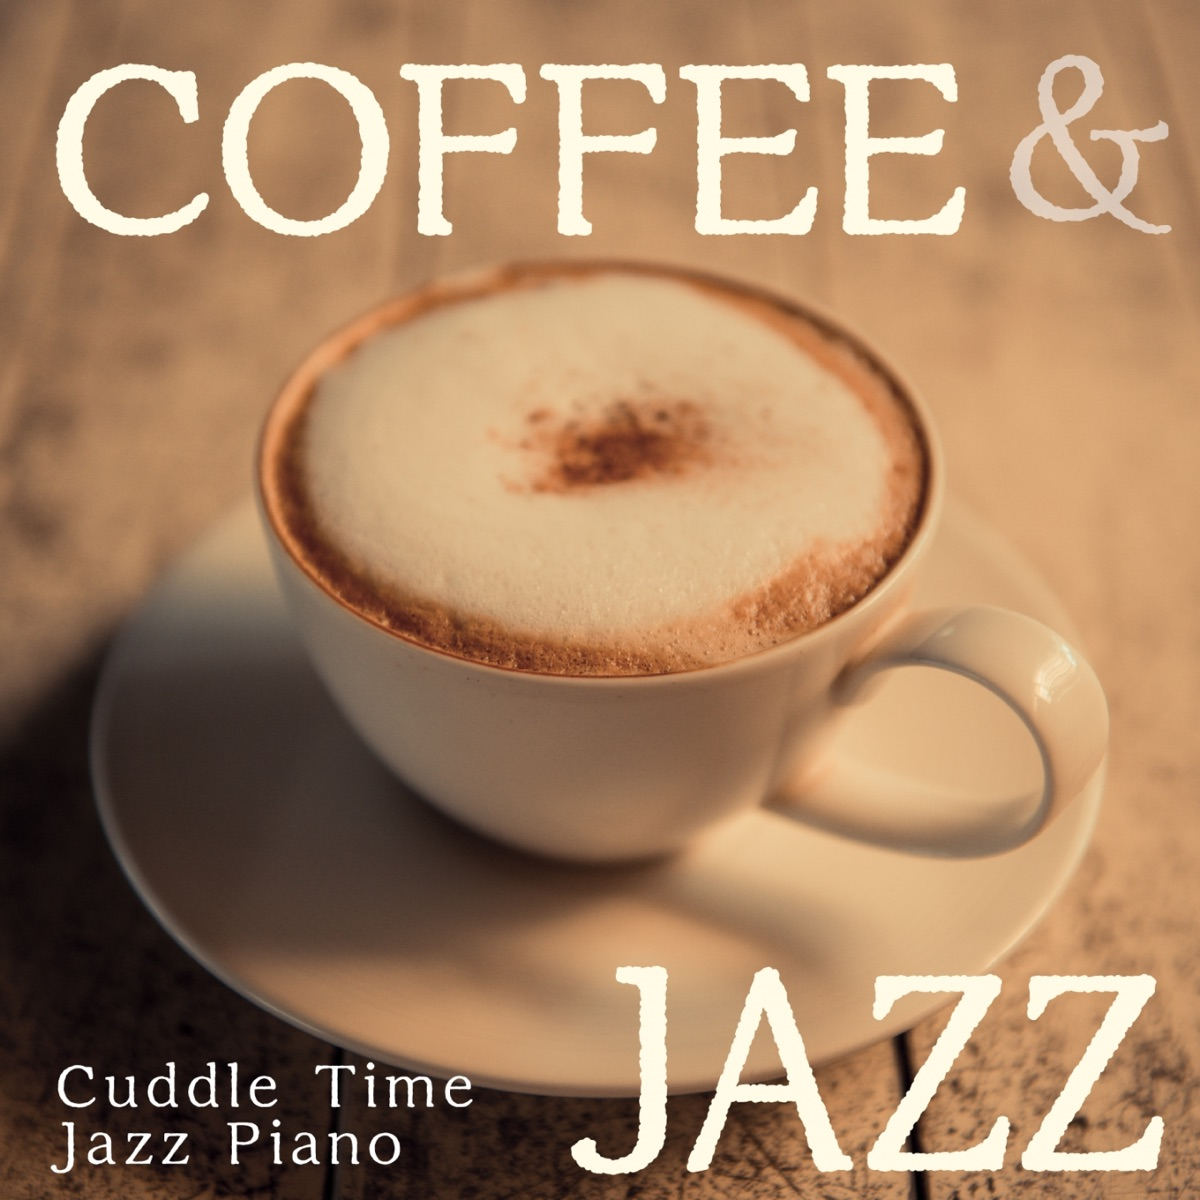 Coffee  Jazz - Cuddle Time Jazz Piano Relaxing Piano Crew CD cover